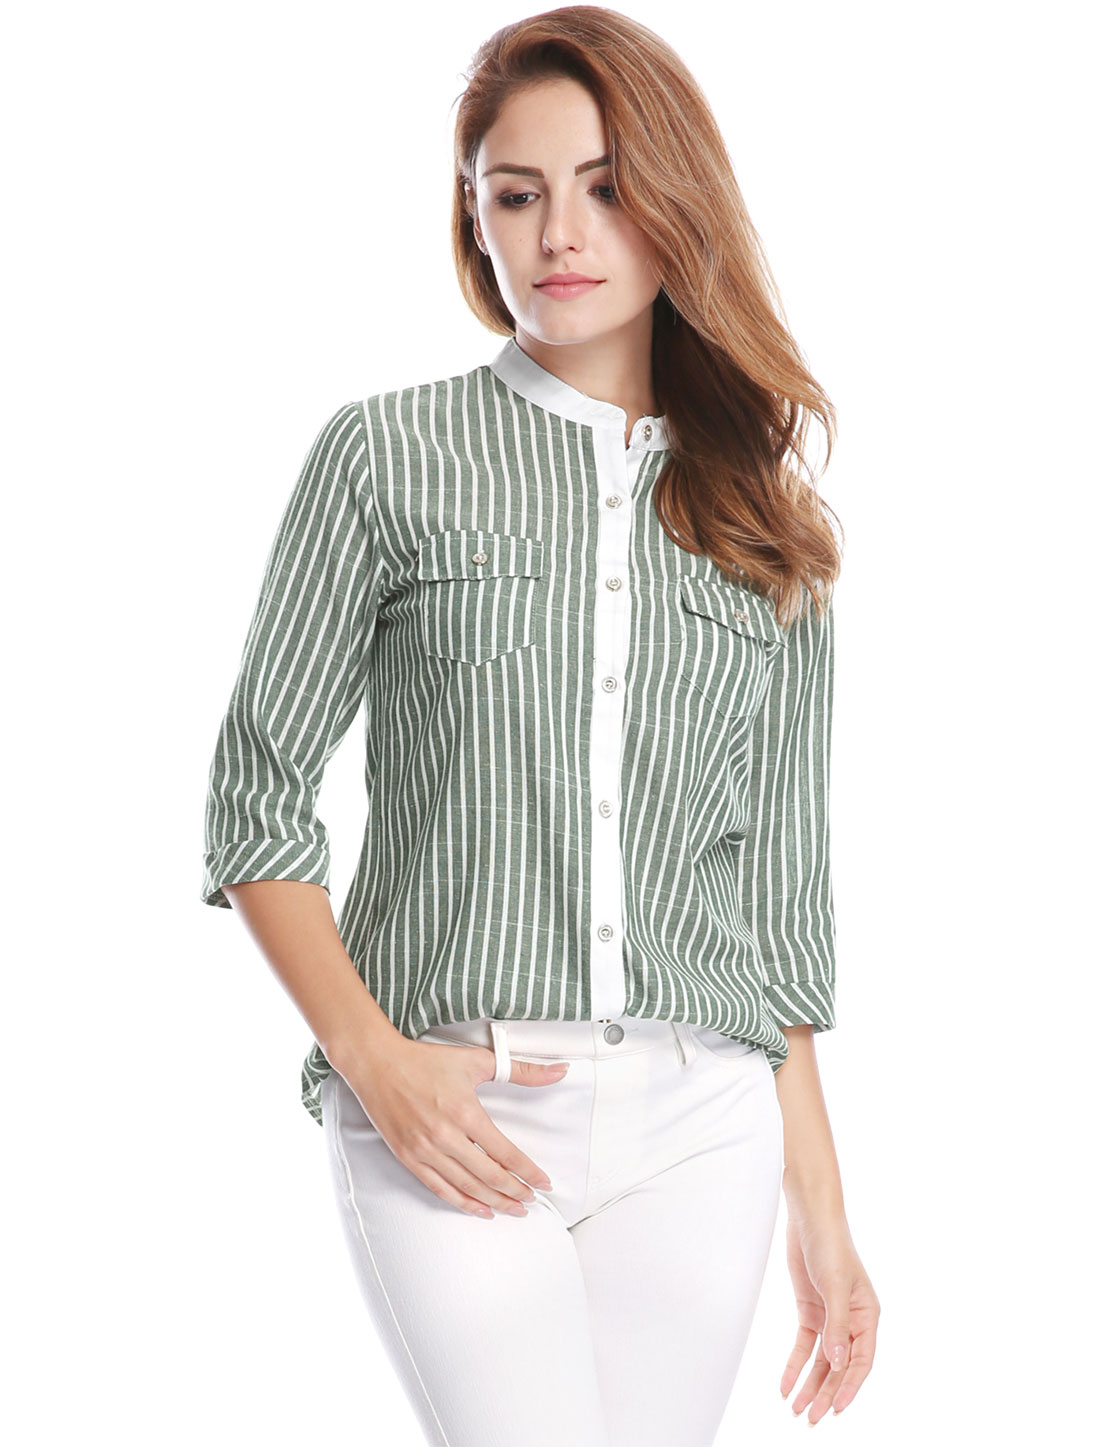 Woman Cuffed 3/4 Sleeves Stand Collar Buttoned Striped Shirt Green M